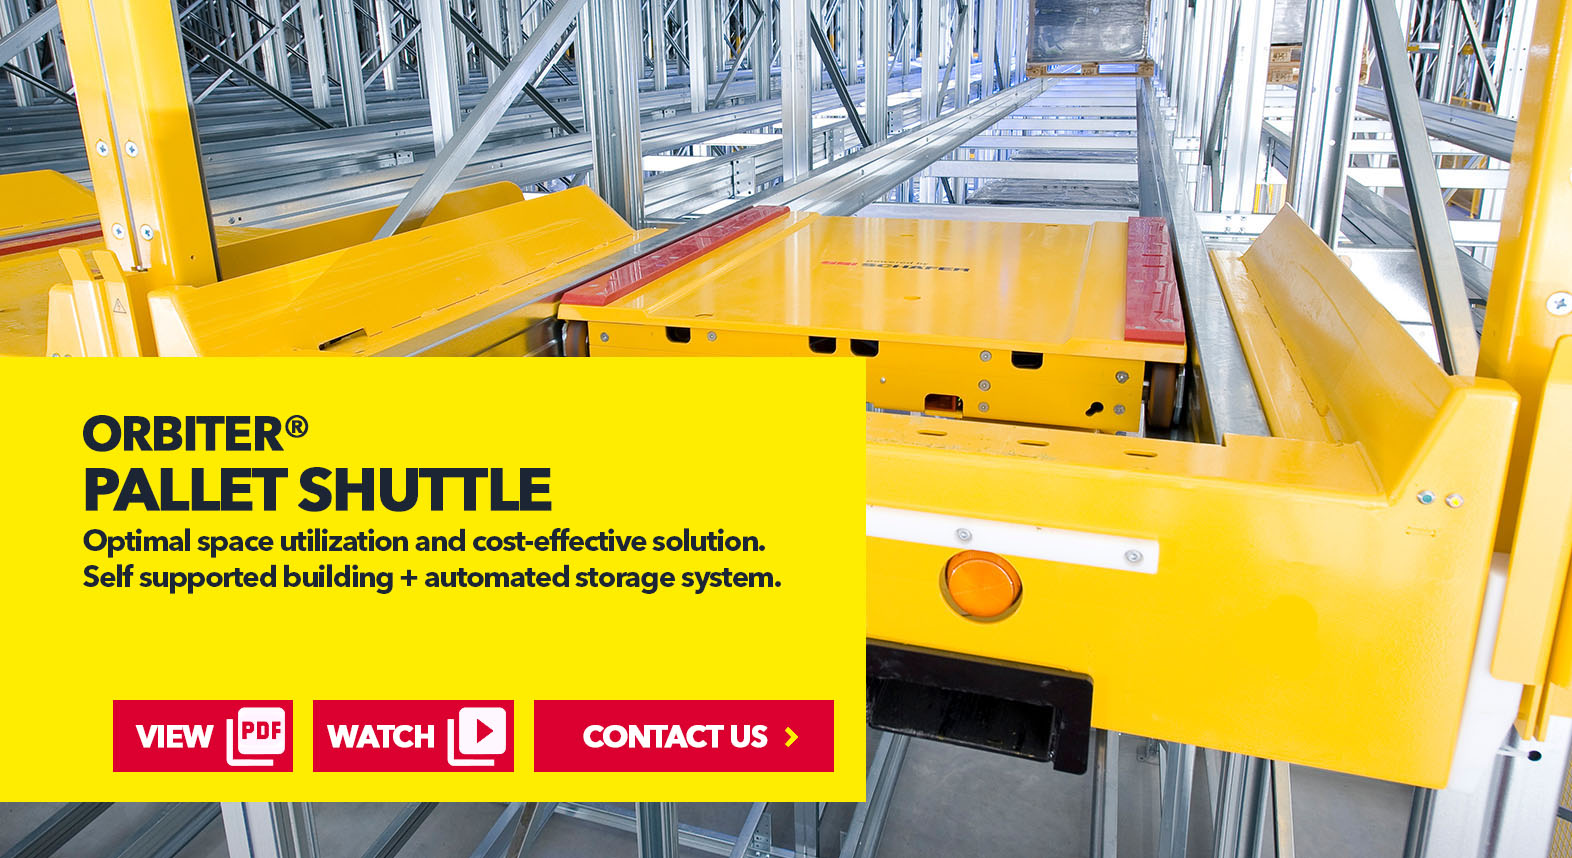 Orbiter Pallet Shuttle by SSI Schaefer USA Download Guide, Watch Video, Contact Us. www.chaefershelving.com